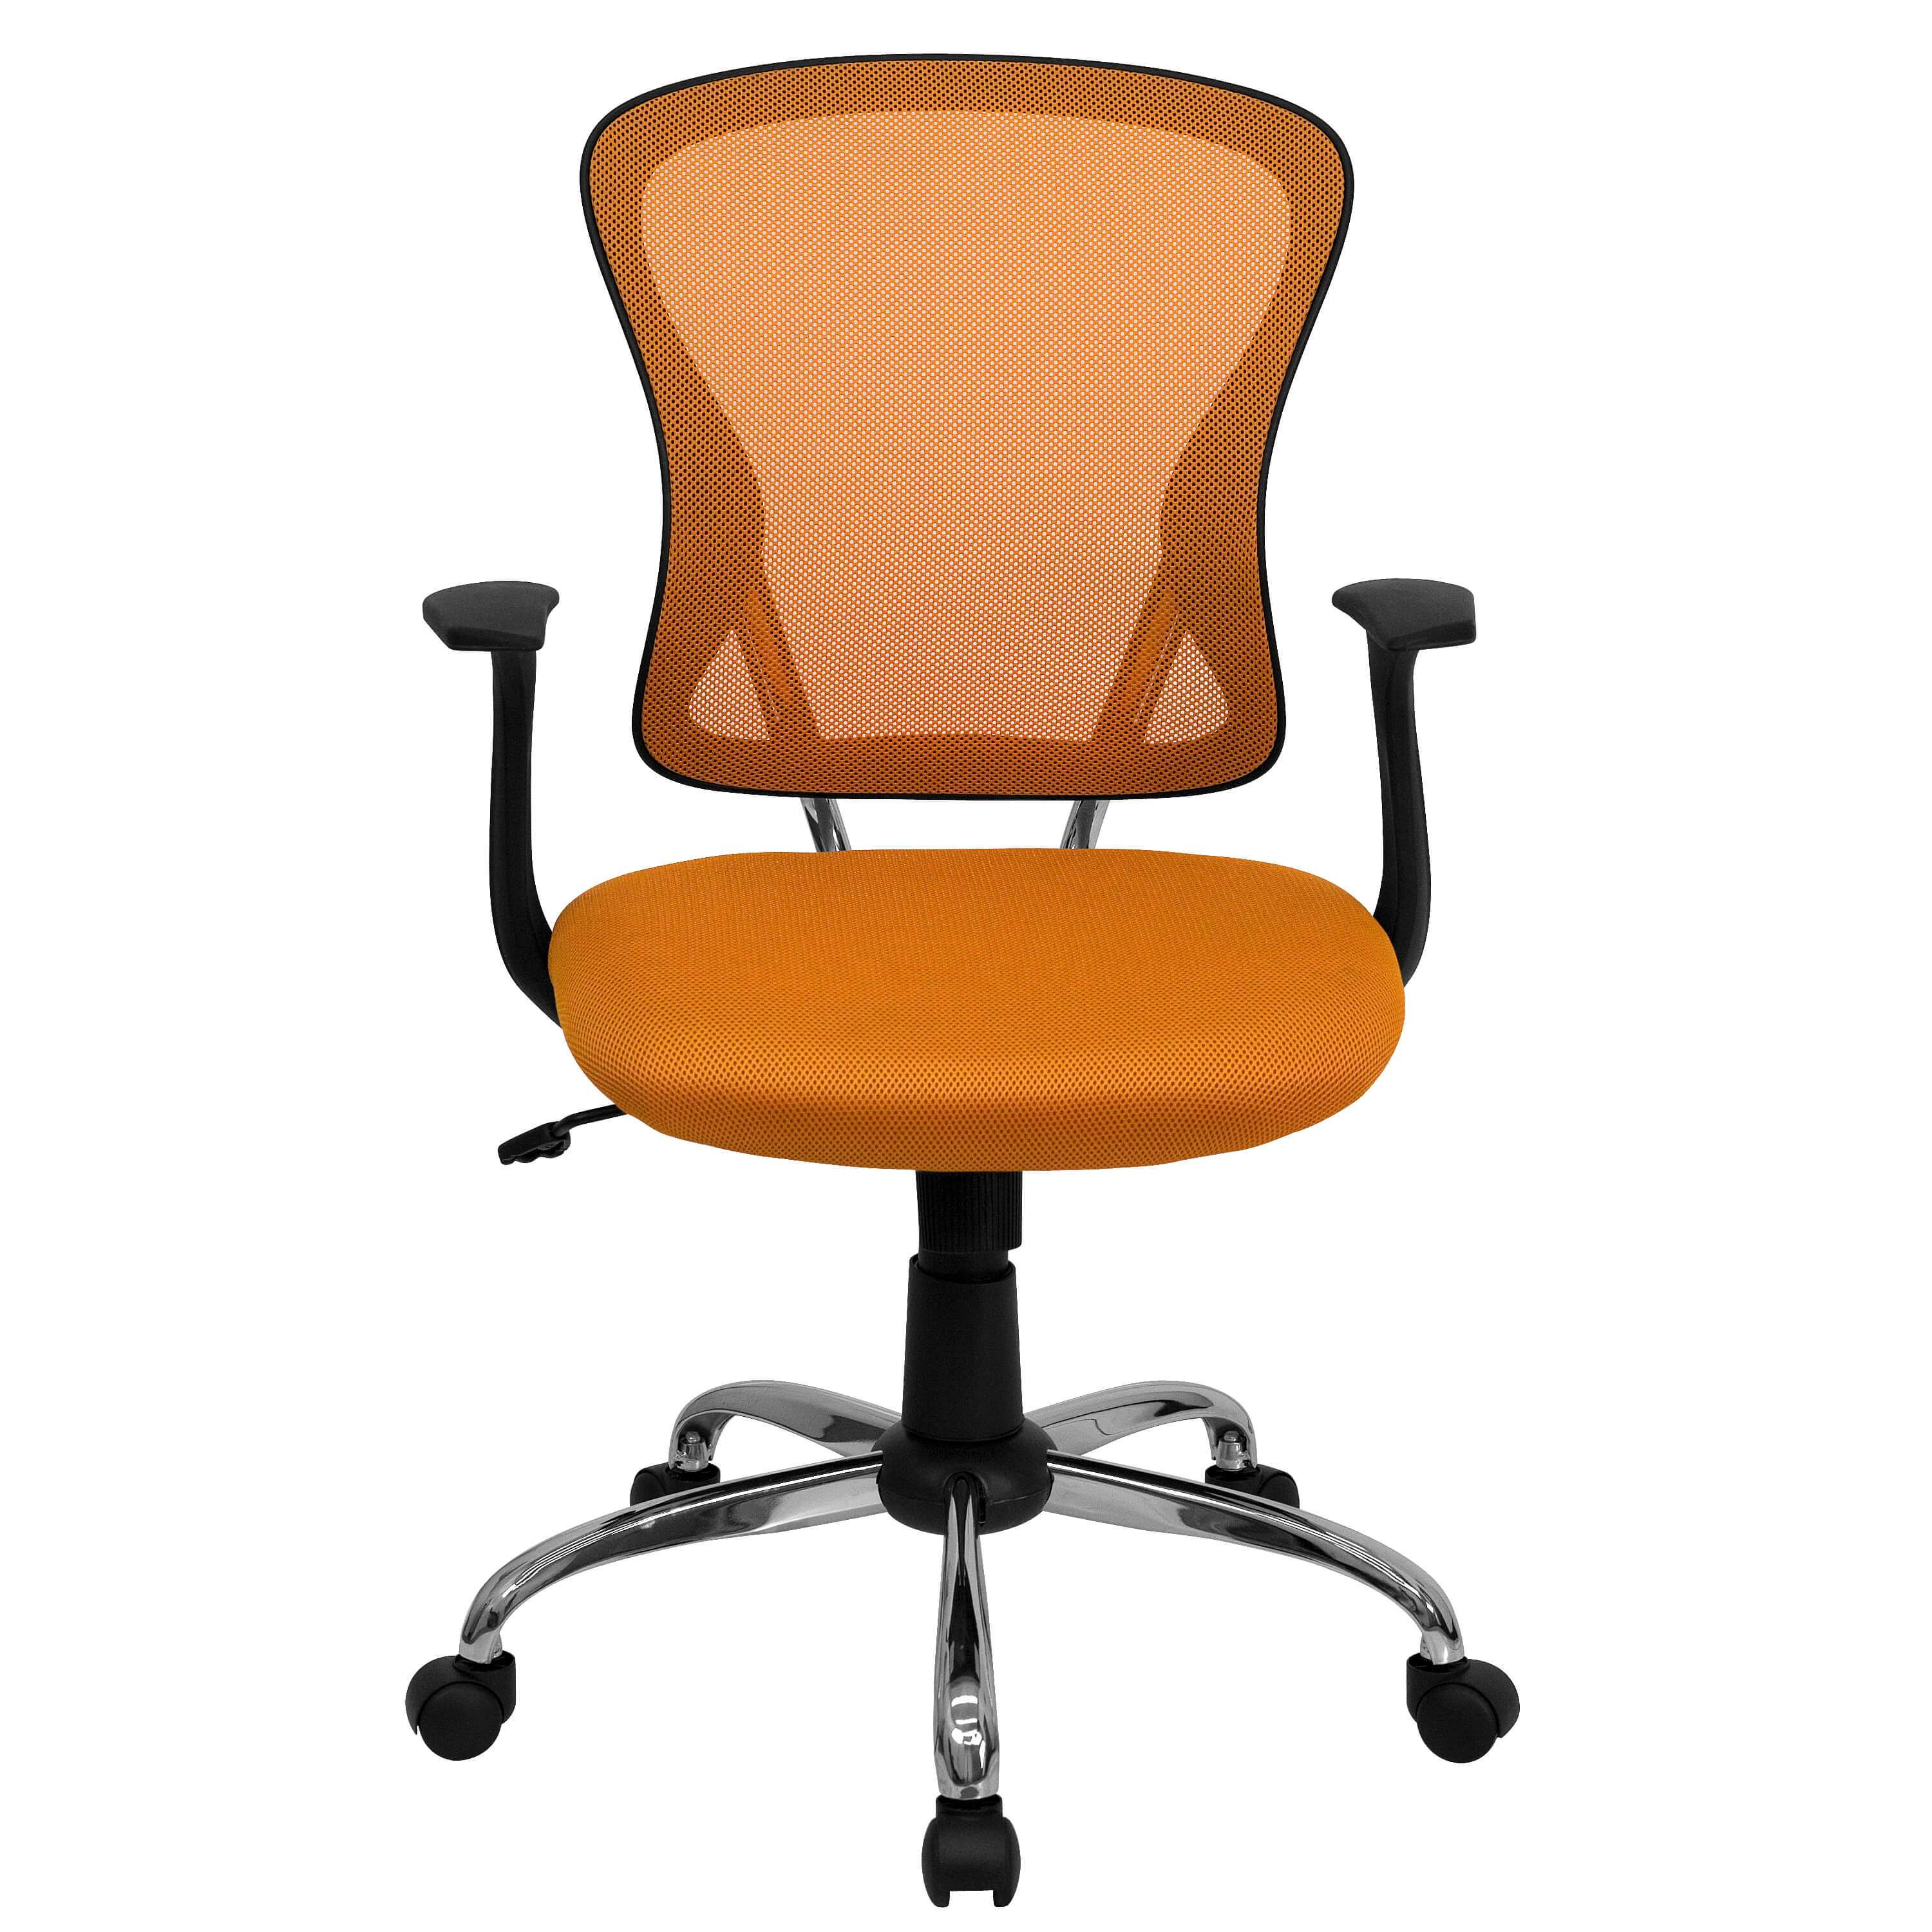 Colorful desk chairs CUB H 8369F ORG GG FLA